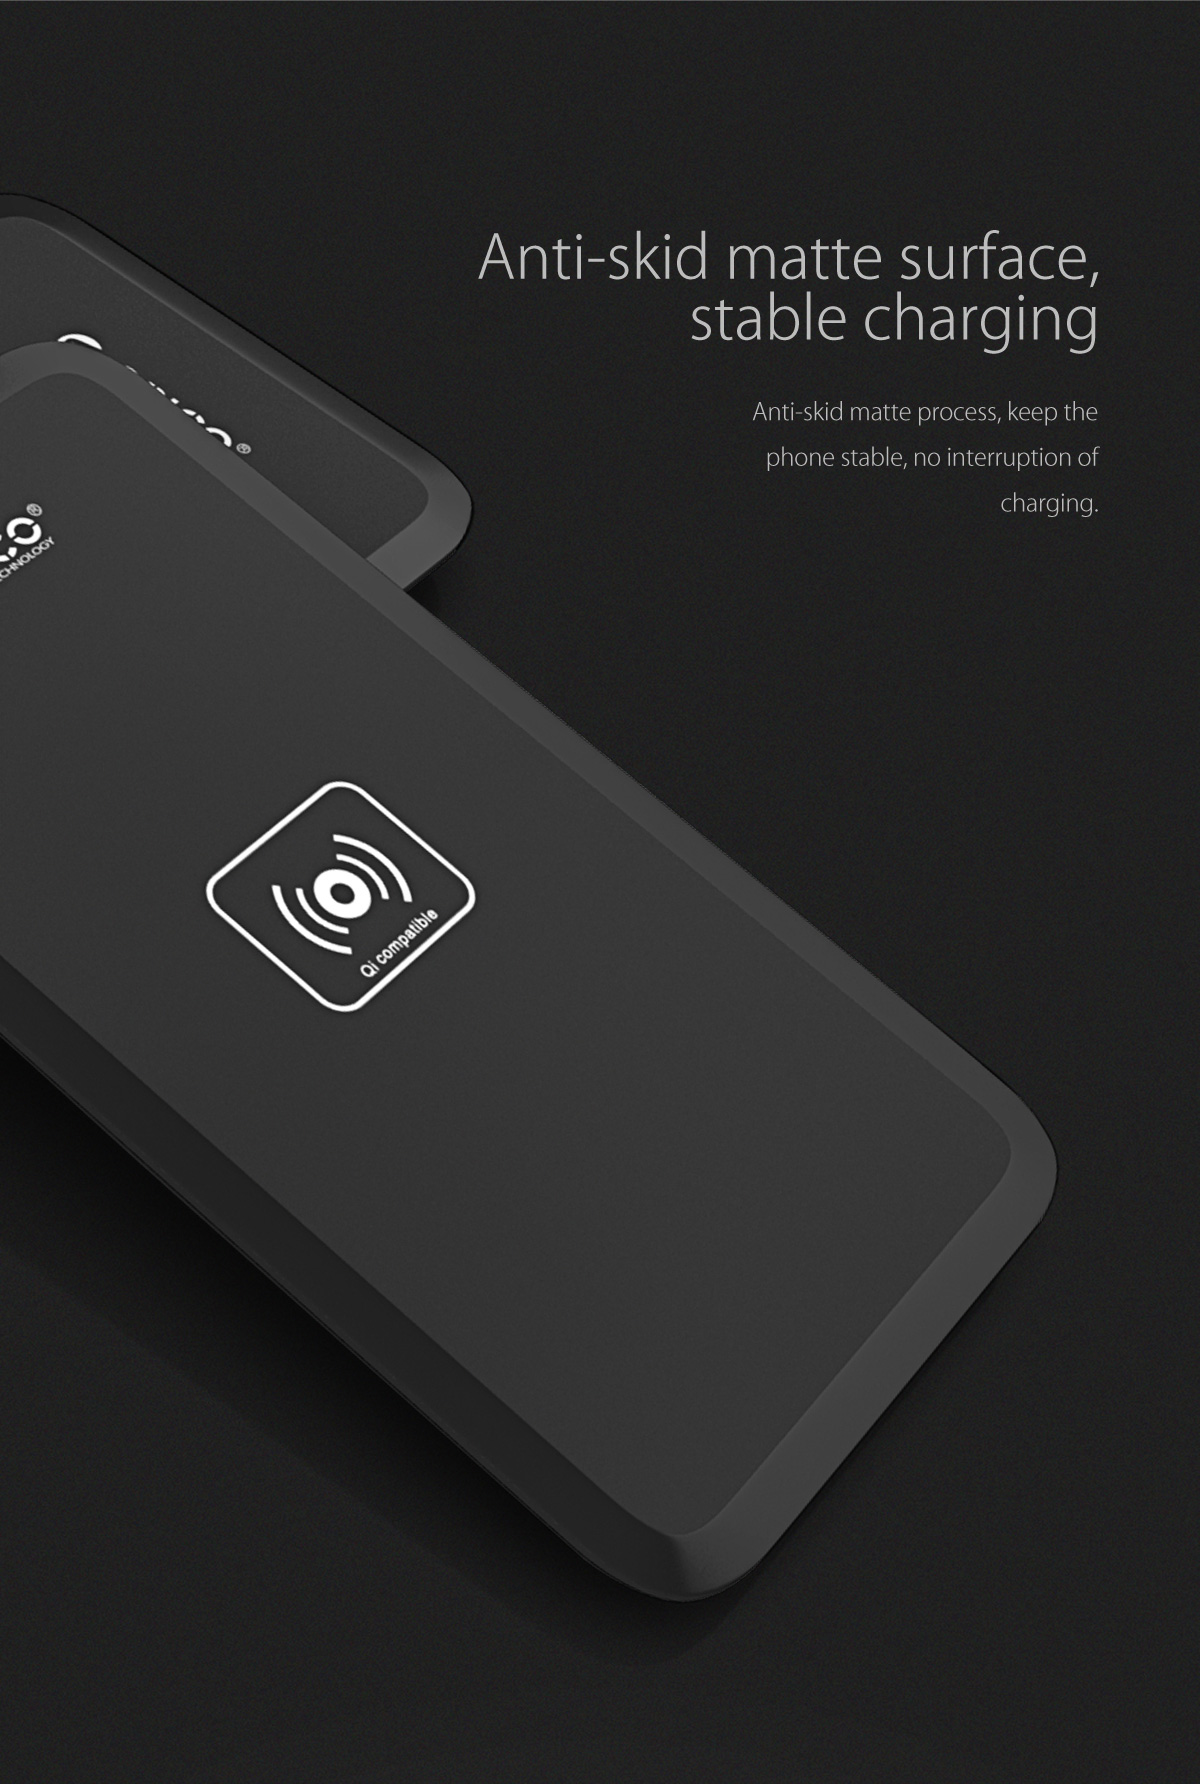 no need to take off the protective shell when charging